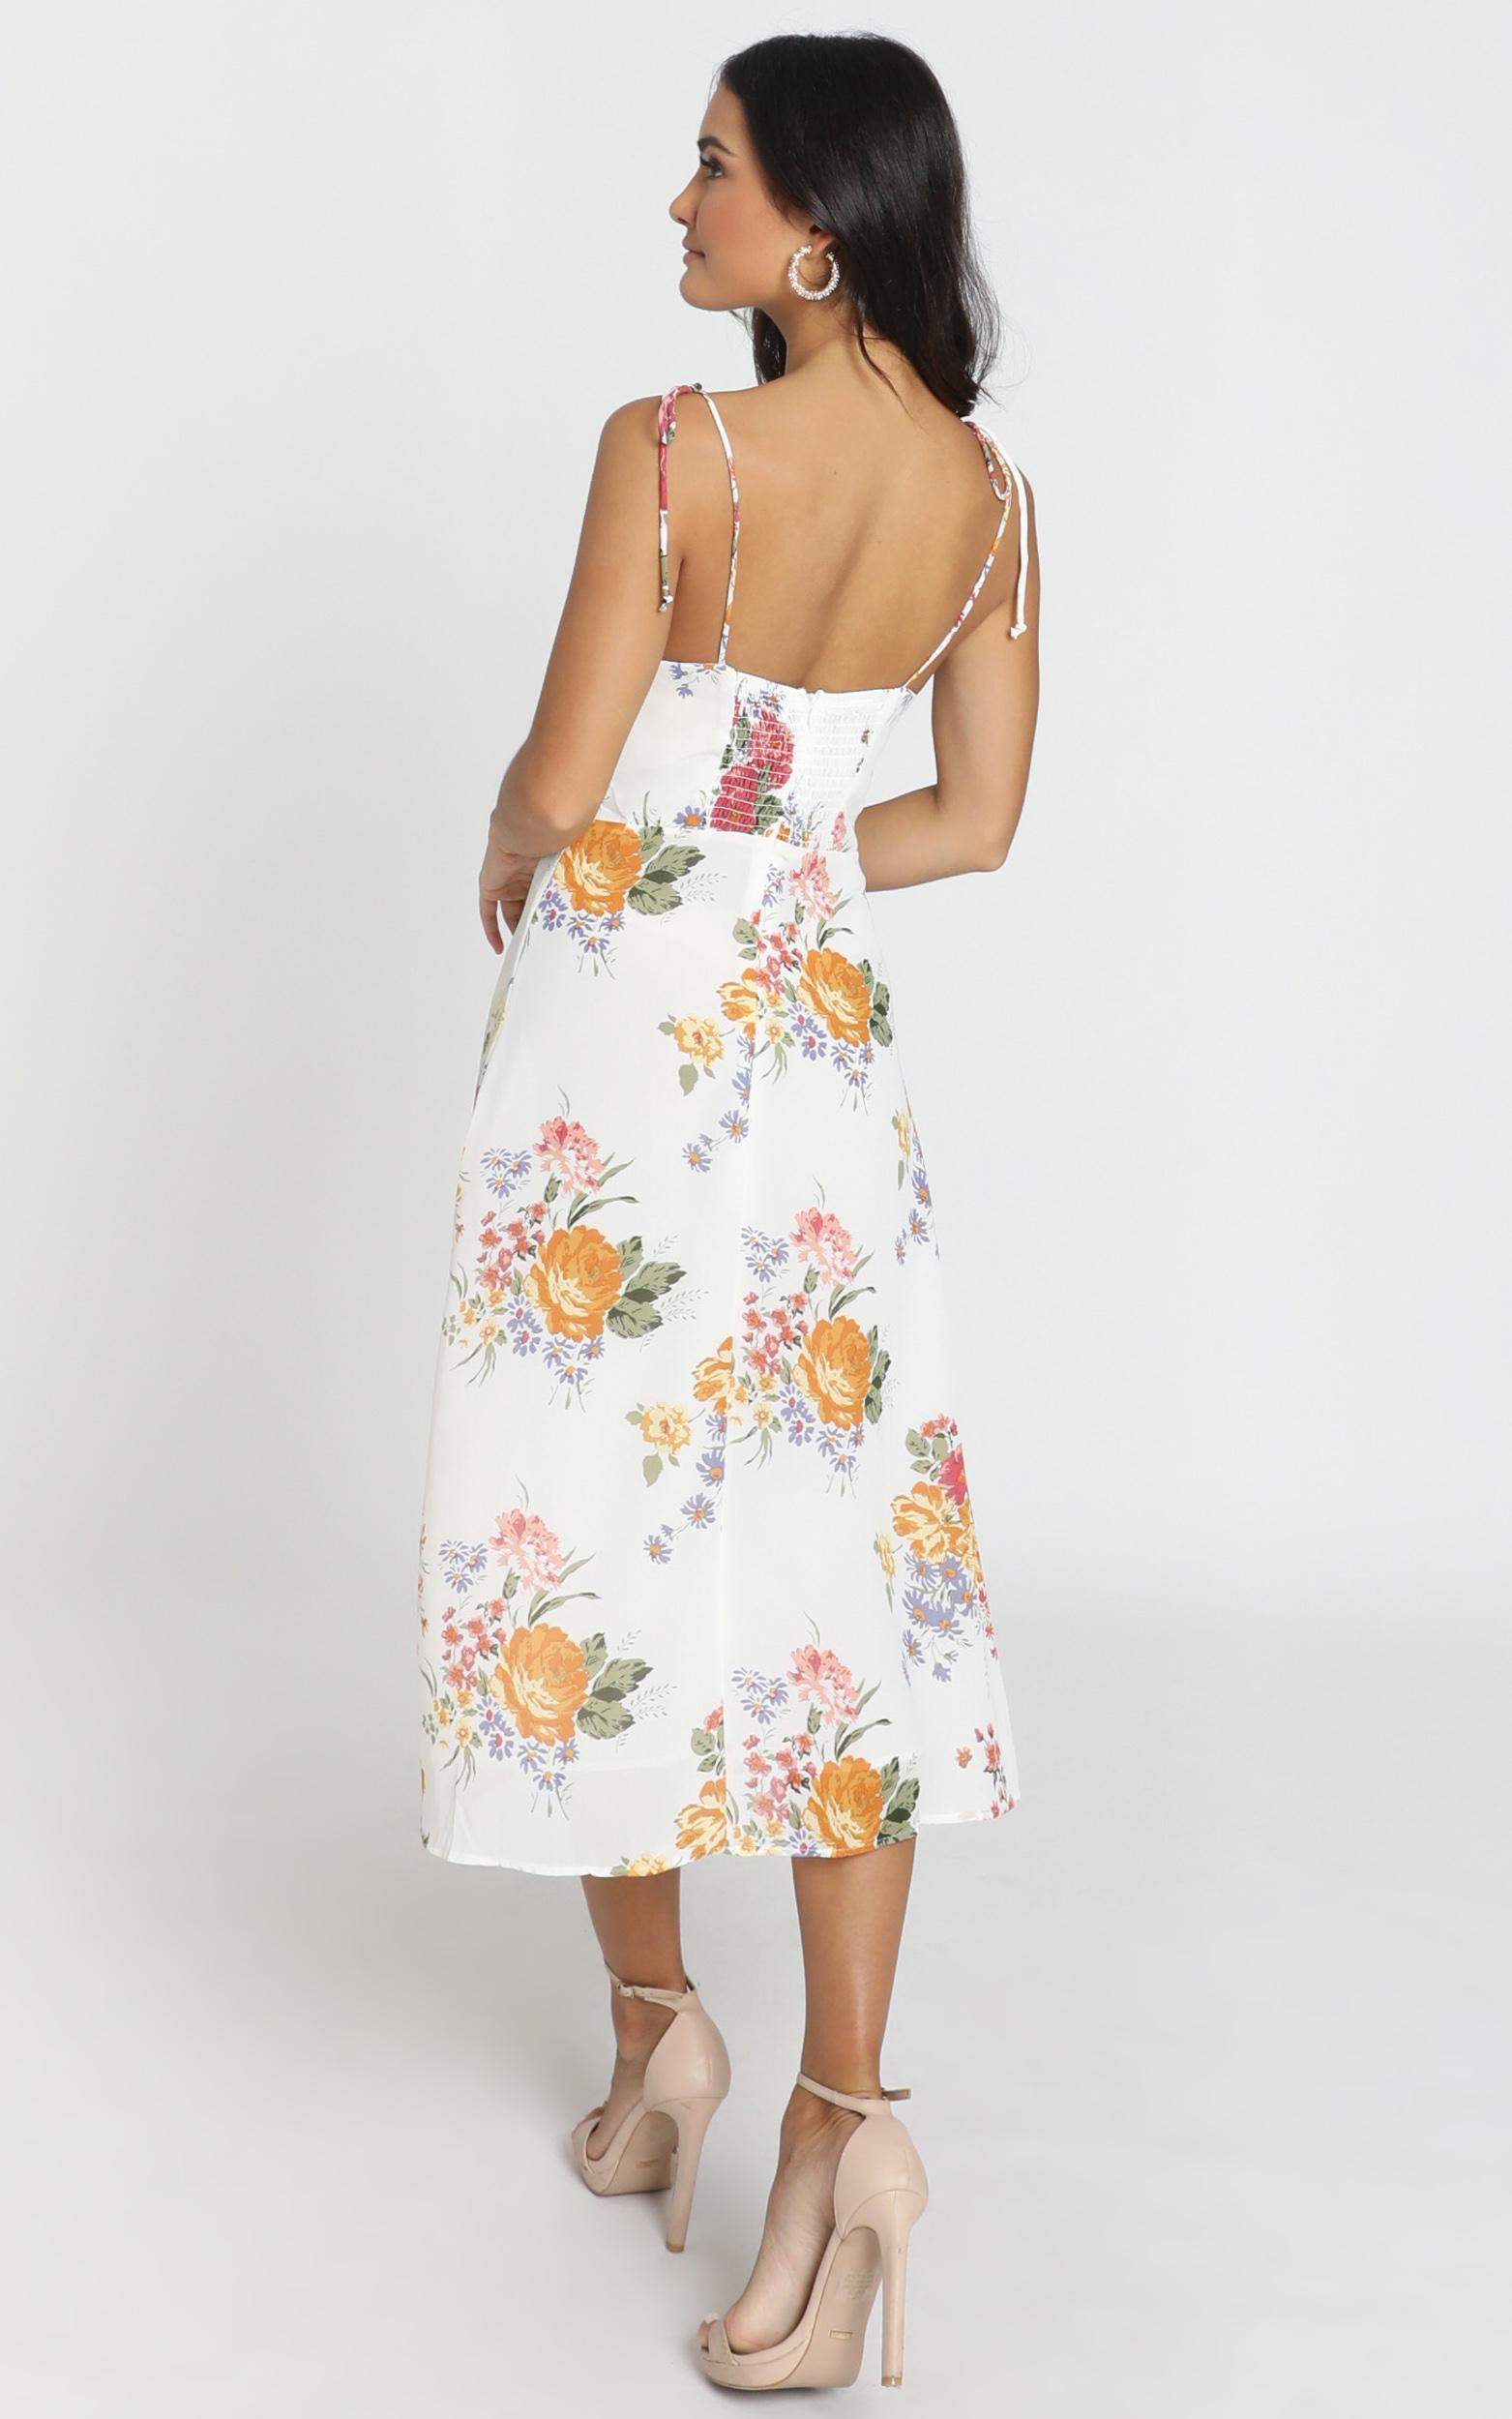 Lacey Panelled Midi Dress in multi floral  - 8 (S), White, hi-res image number null